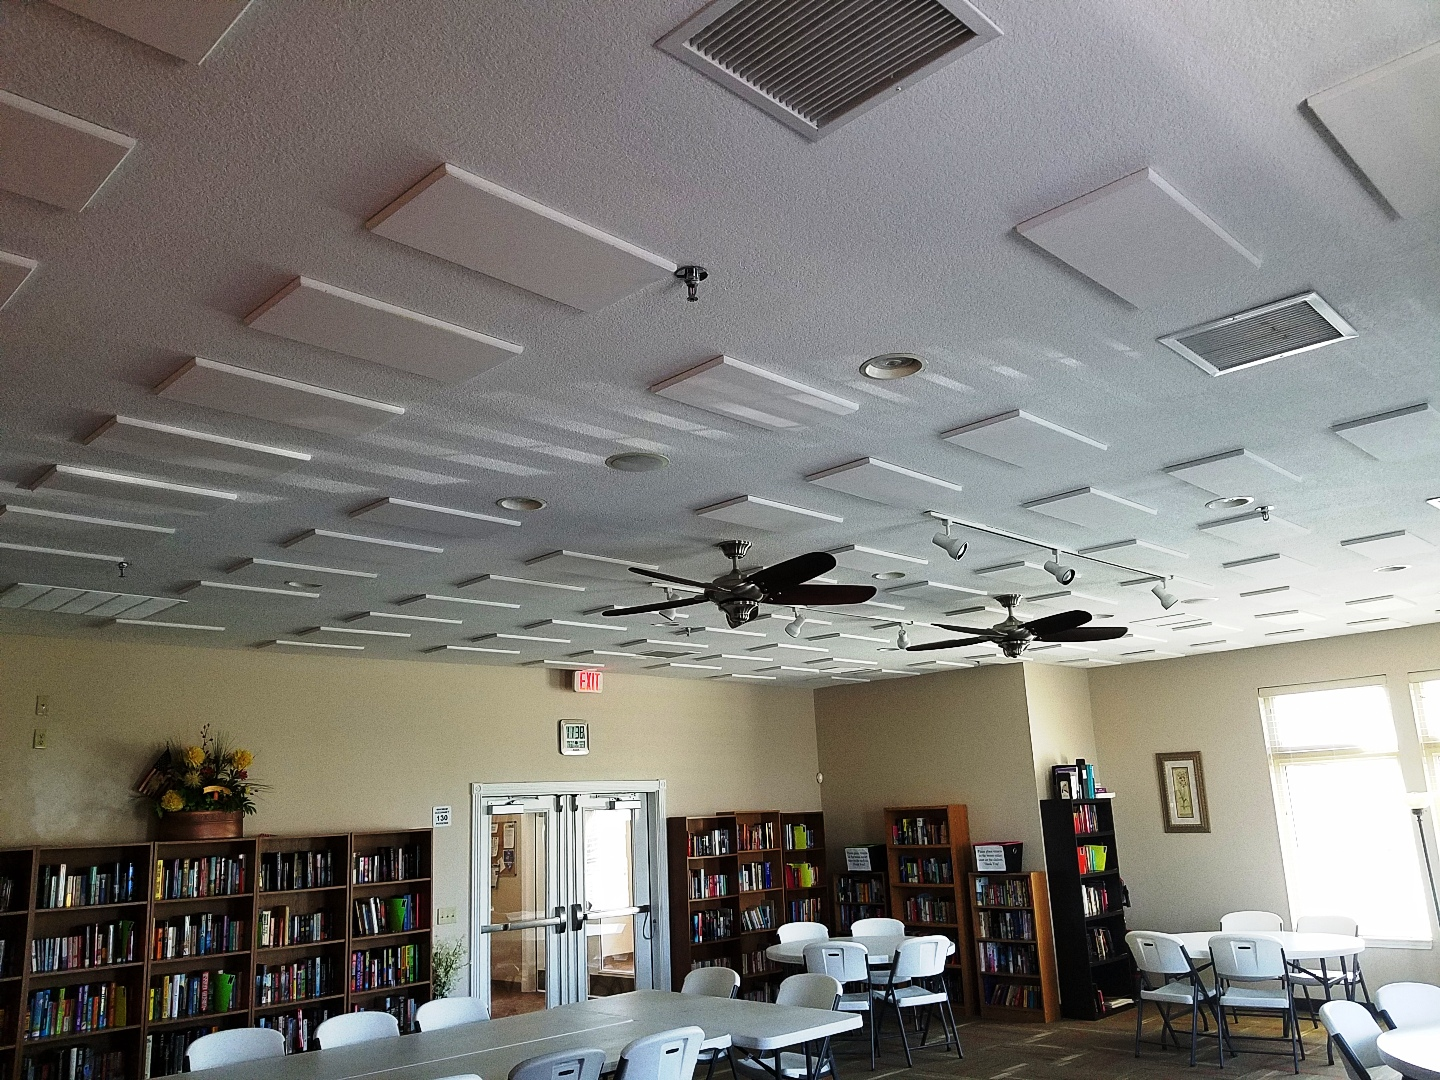 Glue Up Acoustical Ceiling Panels Isc Supply